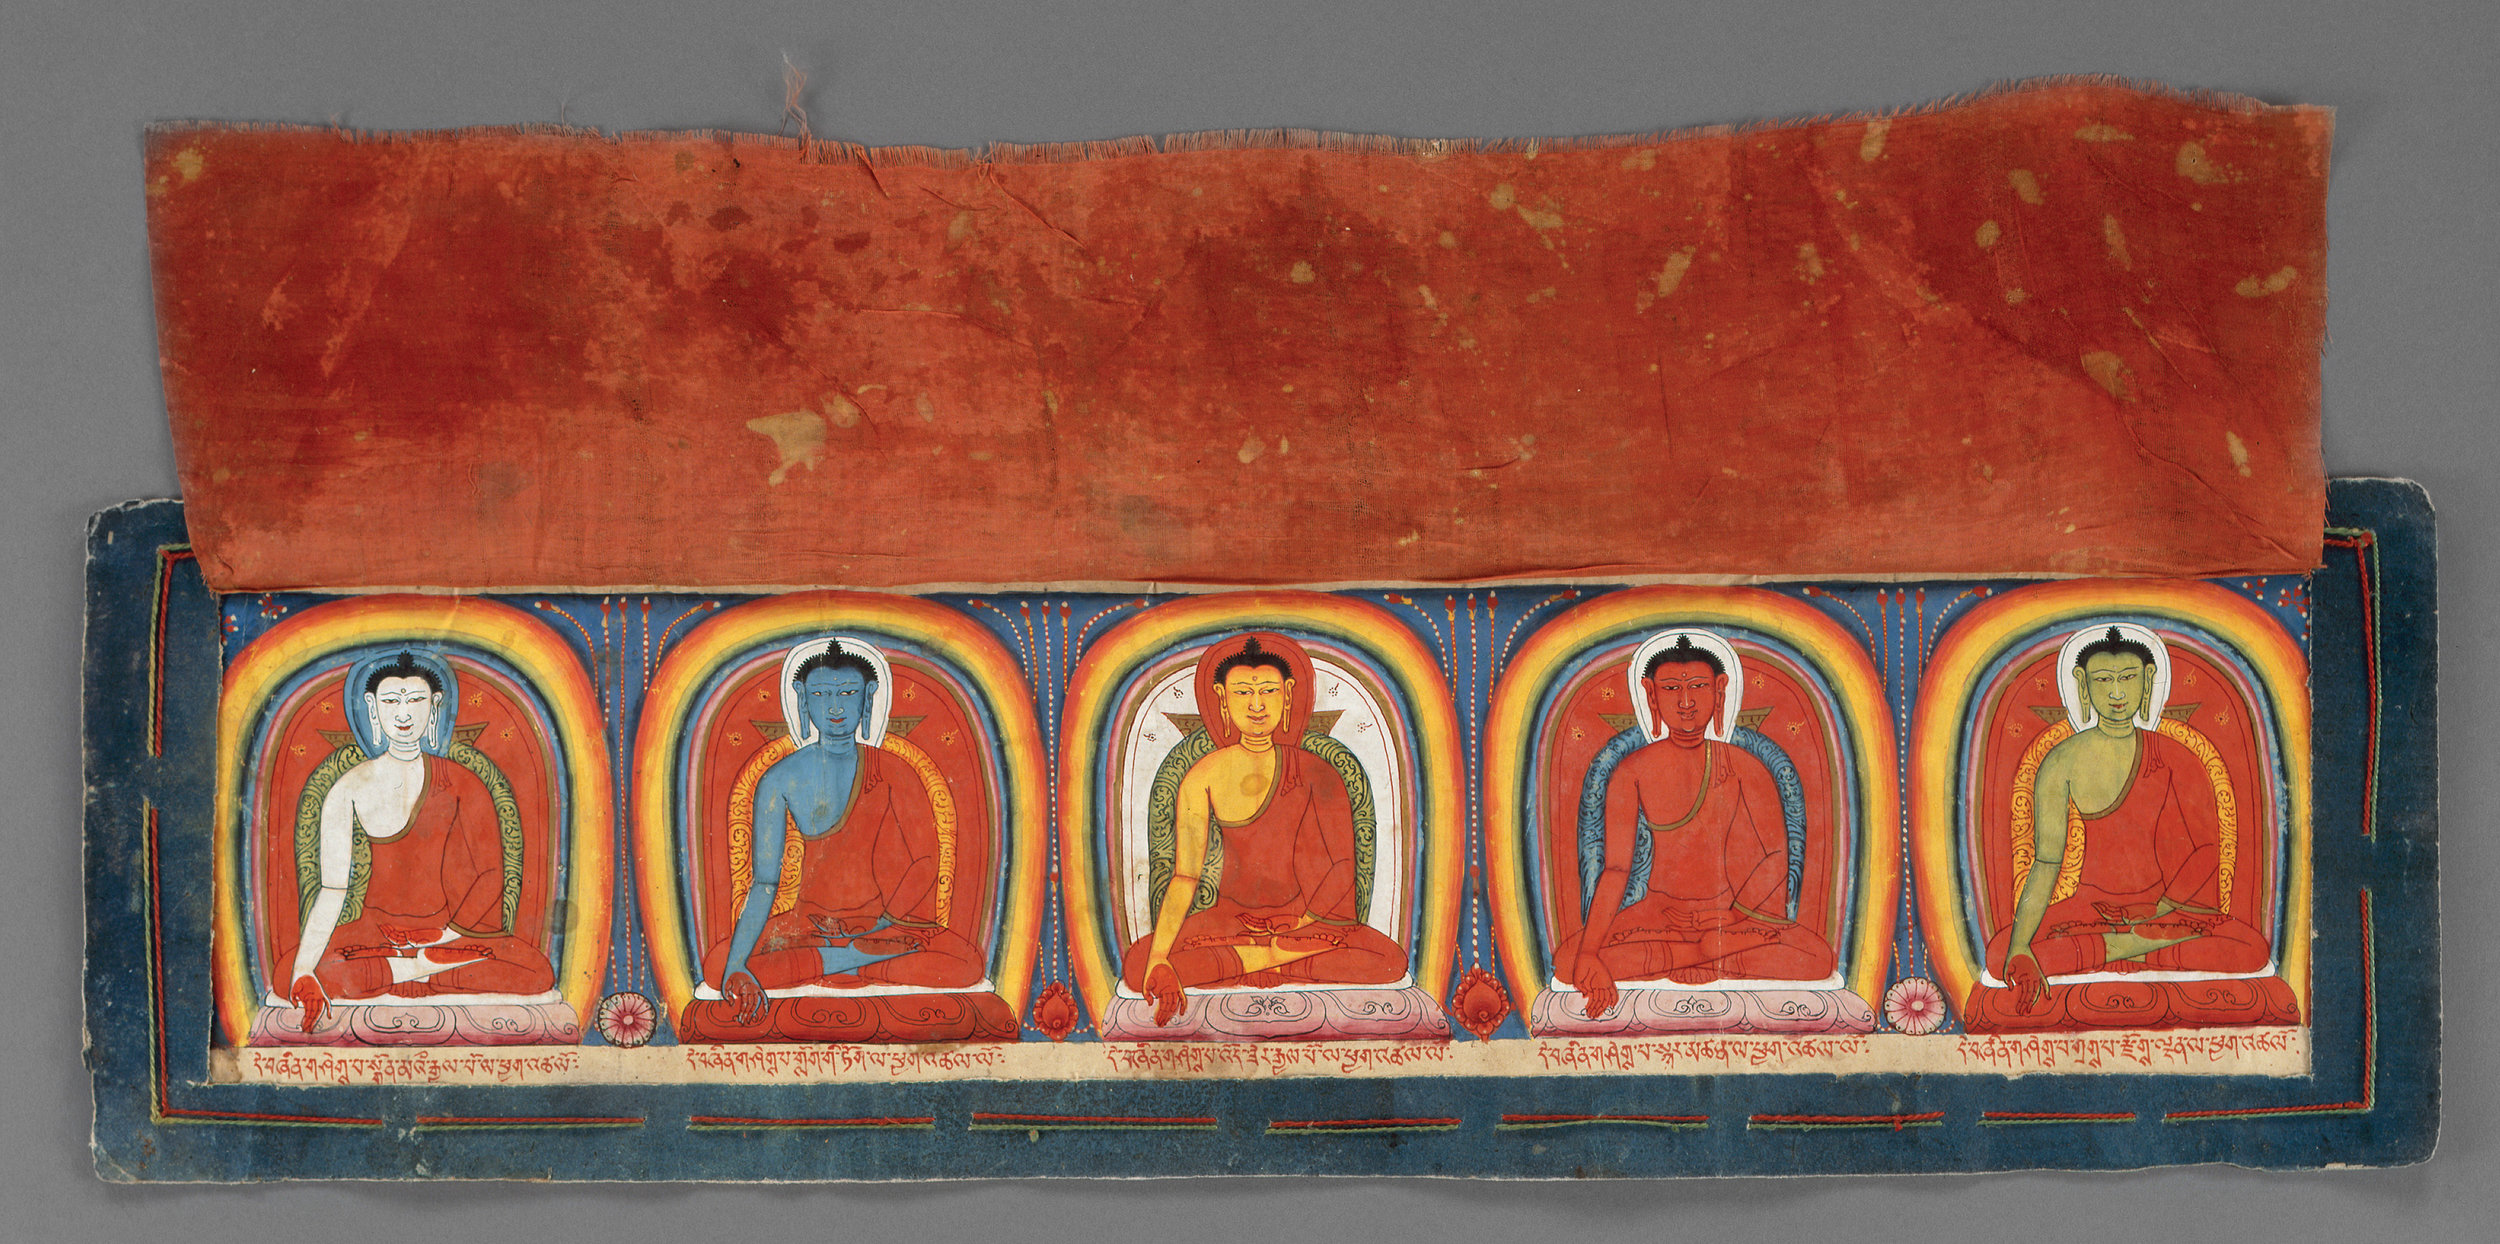 Five Buddha Illuminations (detail), on Black Manuscript Pages, Tibet, 12-13th Century, pigments on paper, silk cover